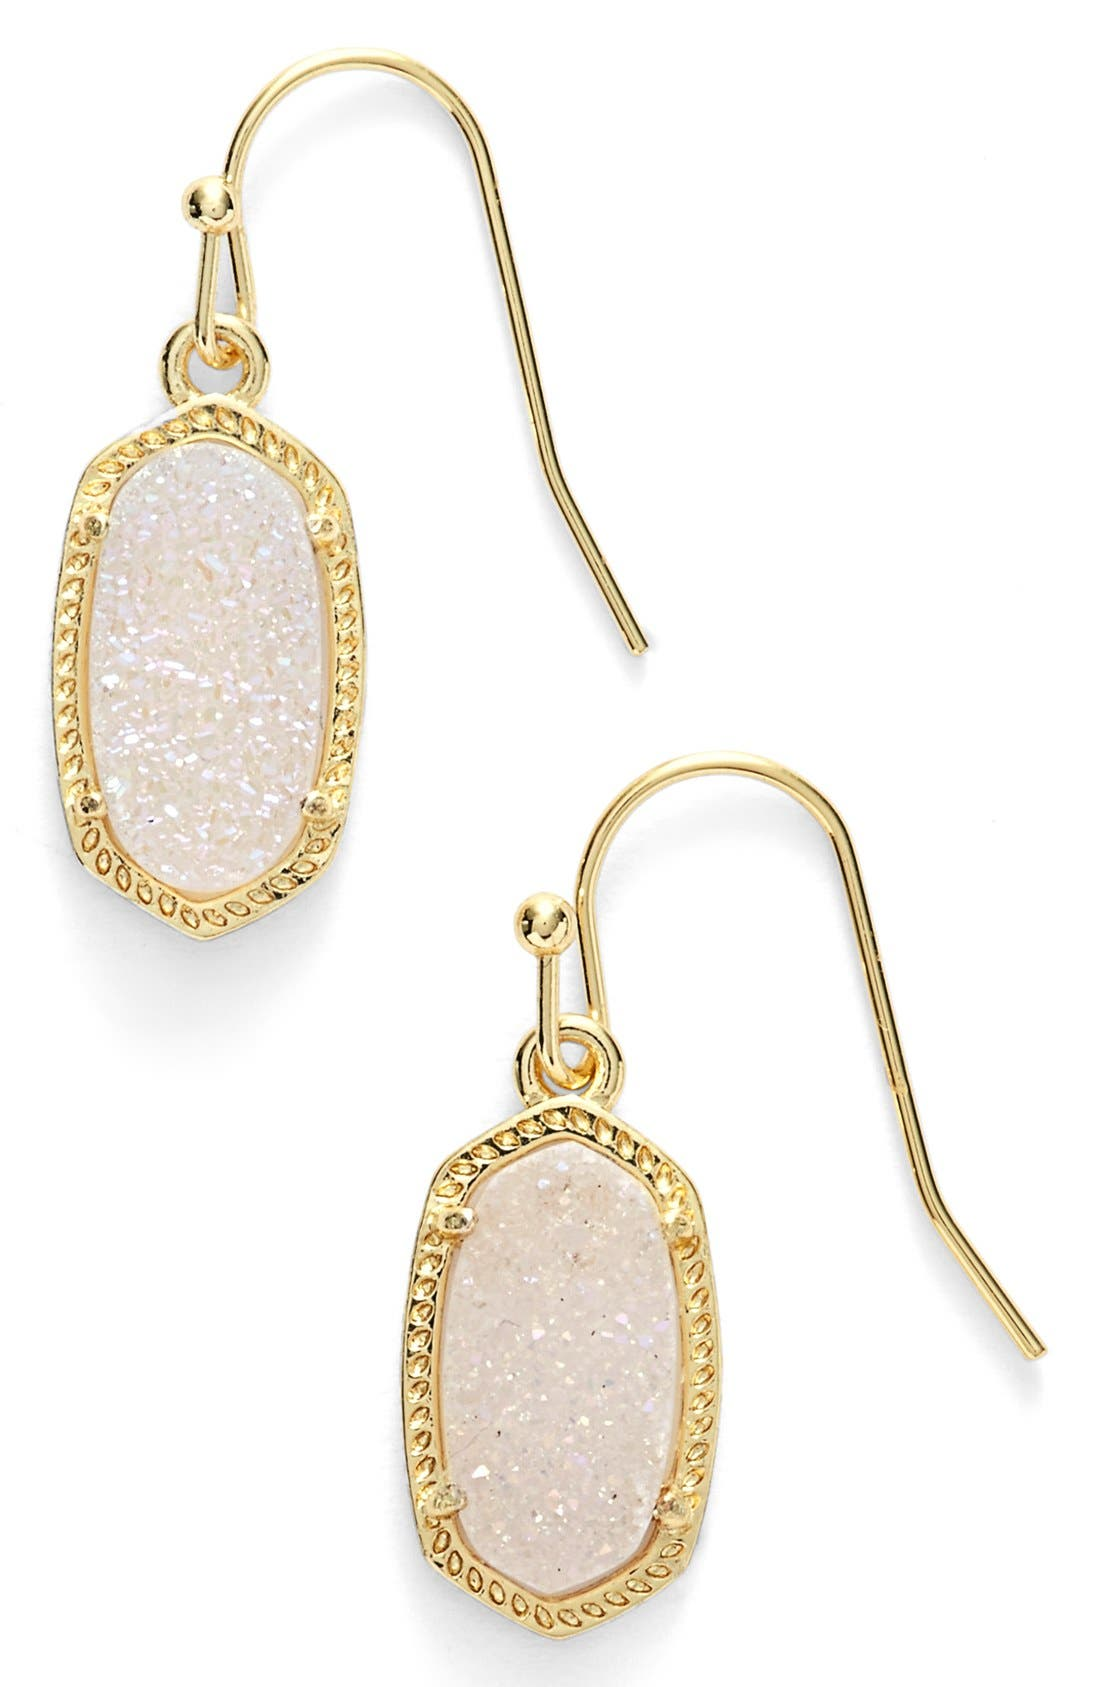 Kendra Scott 'Lee' Small Drop Earrings